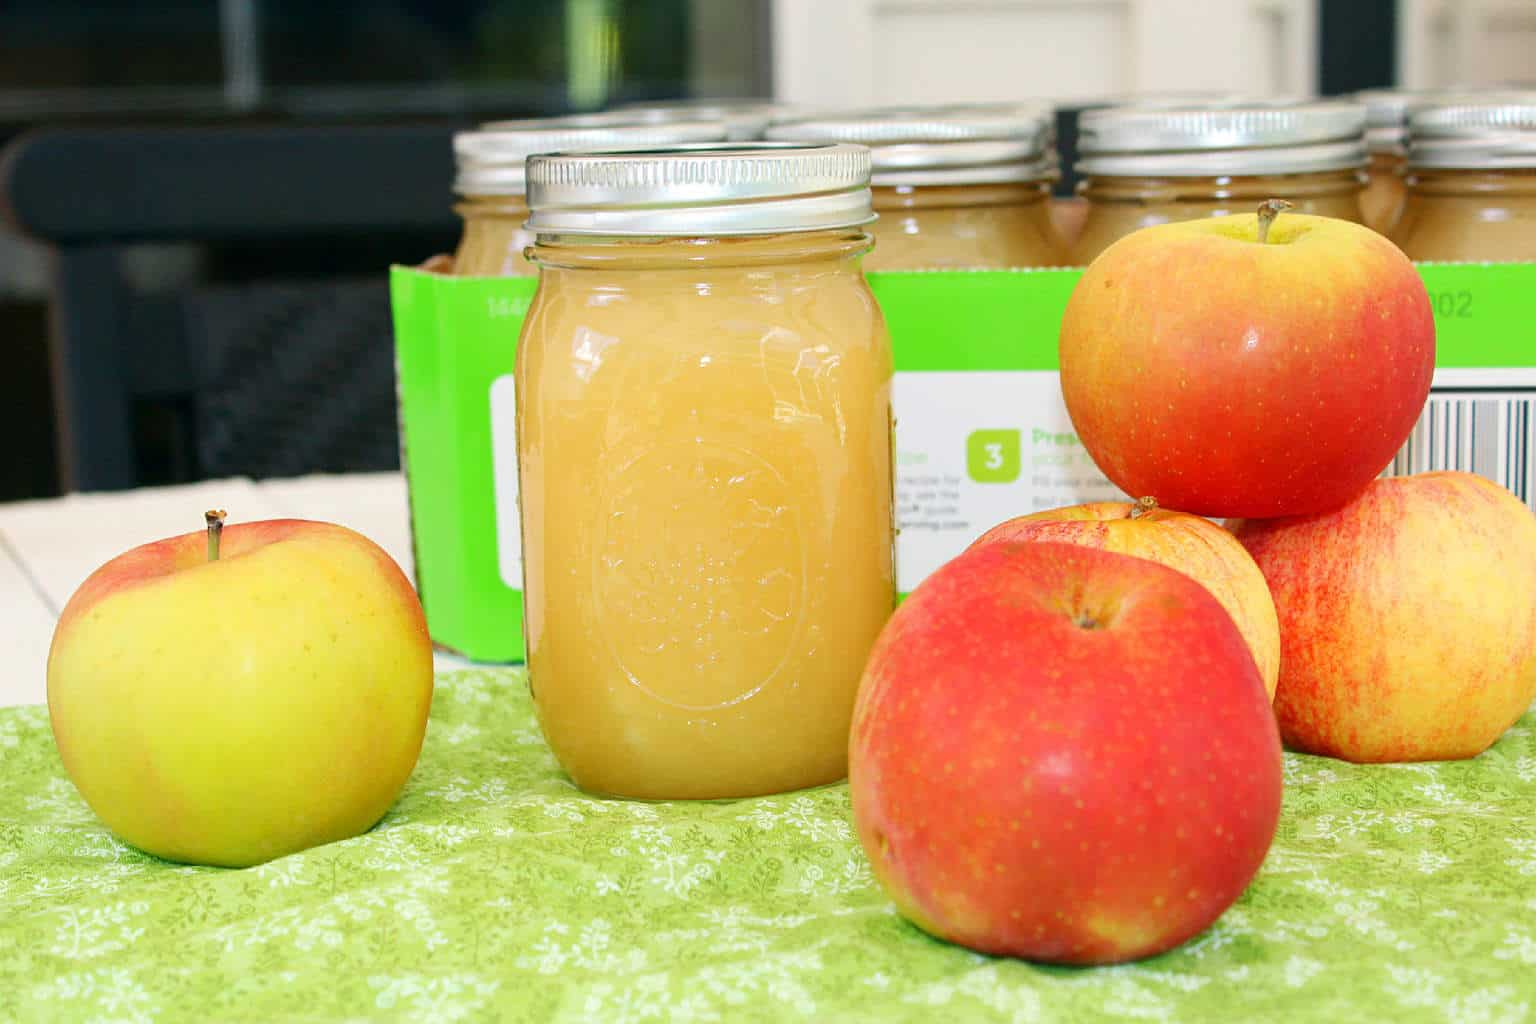 Kindness, Goodness and Fresh Apples (Recipe: Homemade Applesauce)